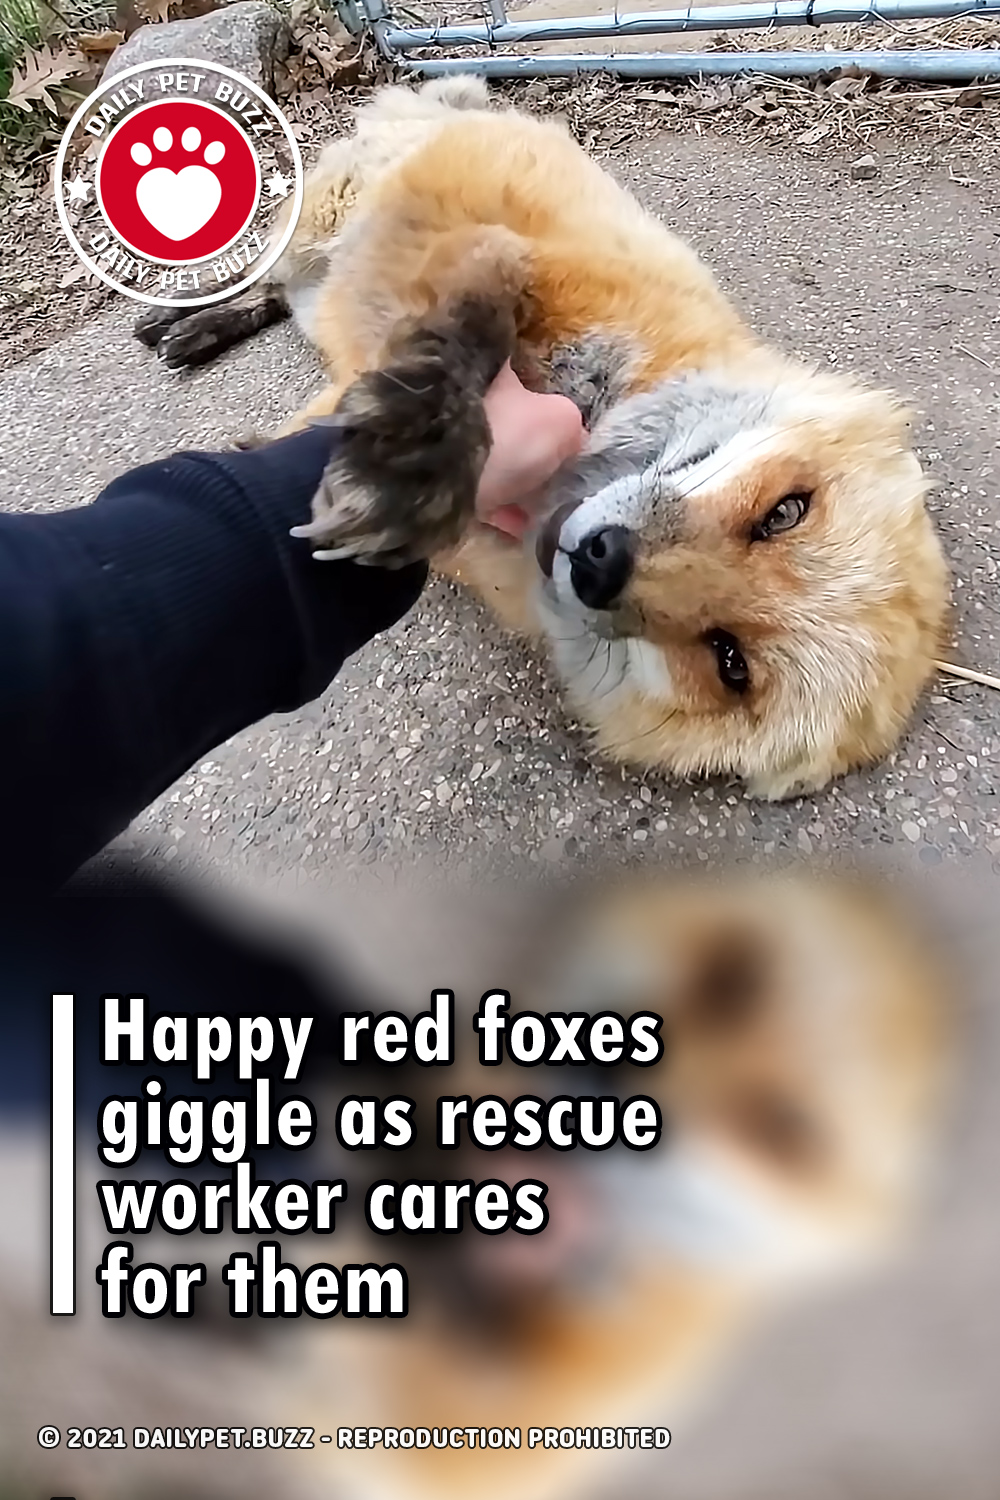 Happy red foxes giggle as rescue worker cares for them